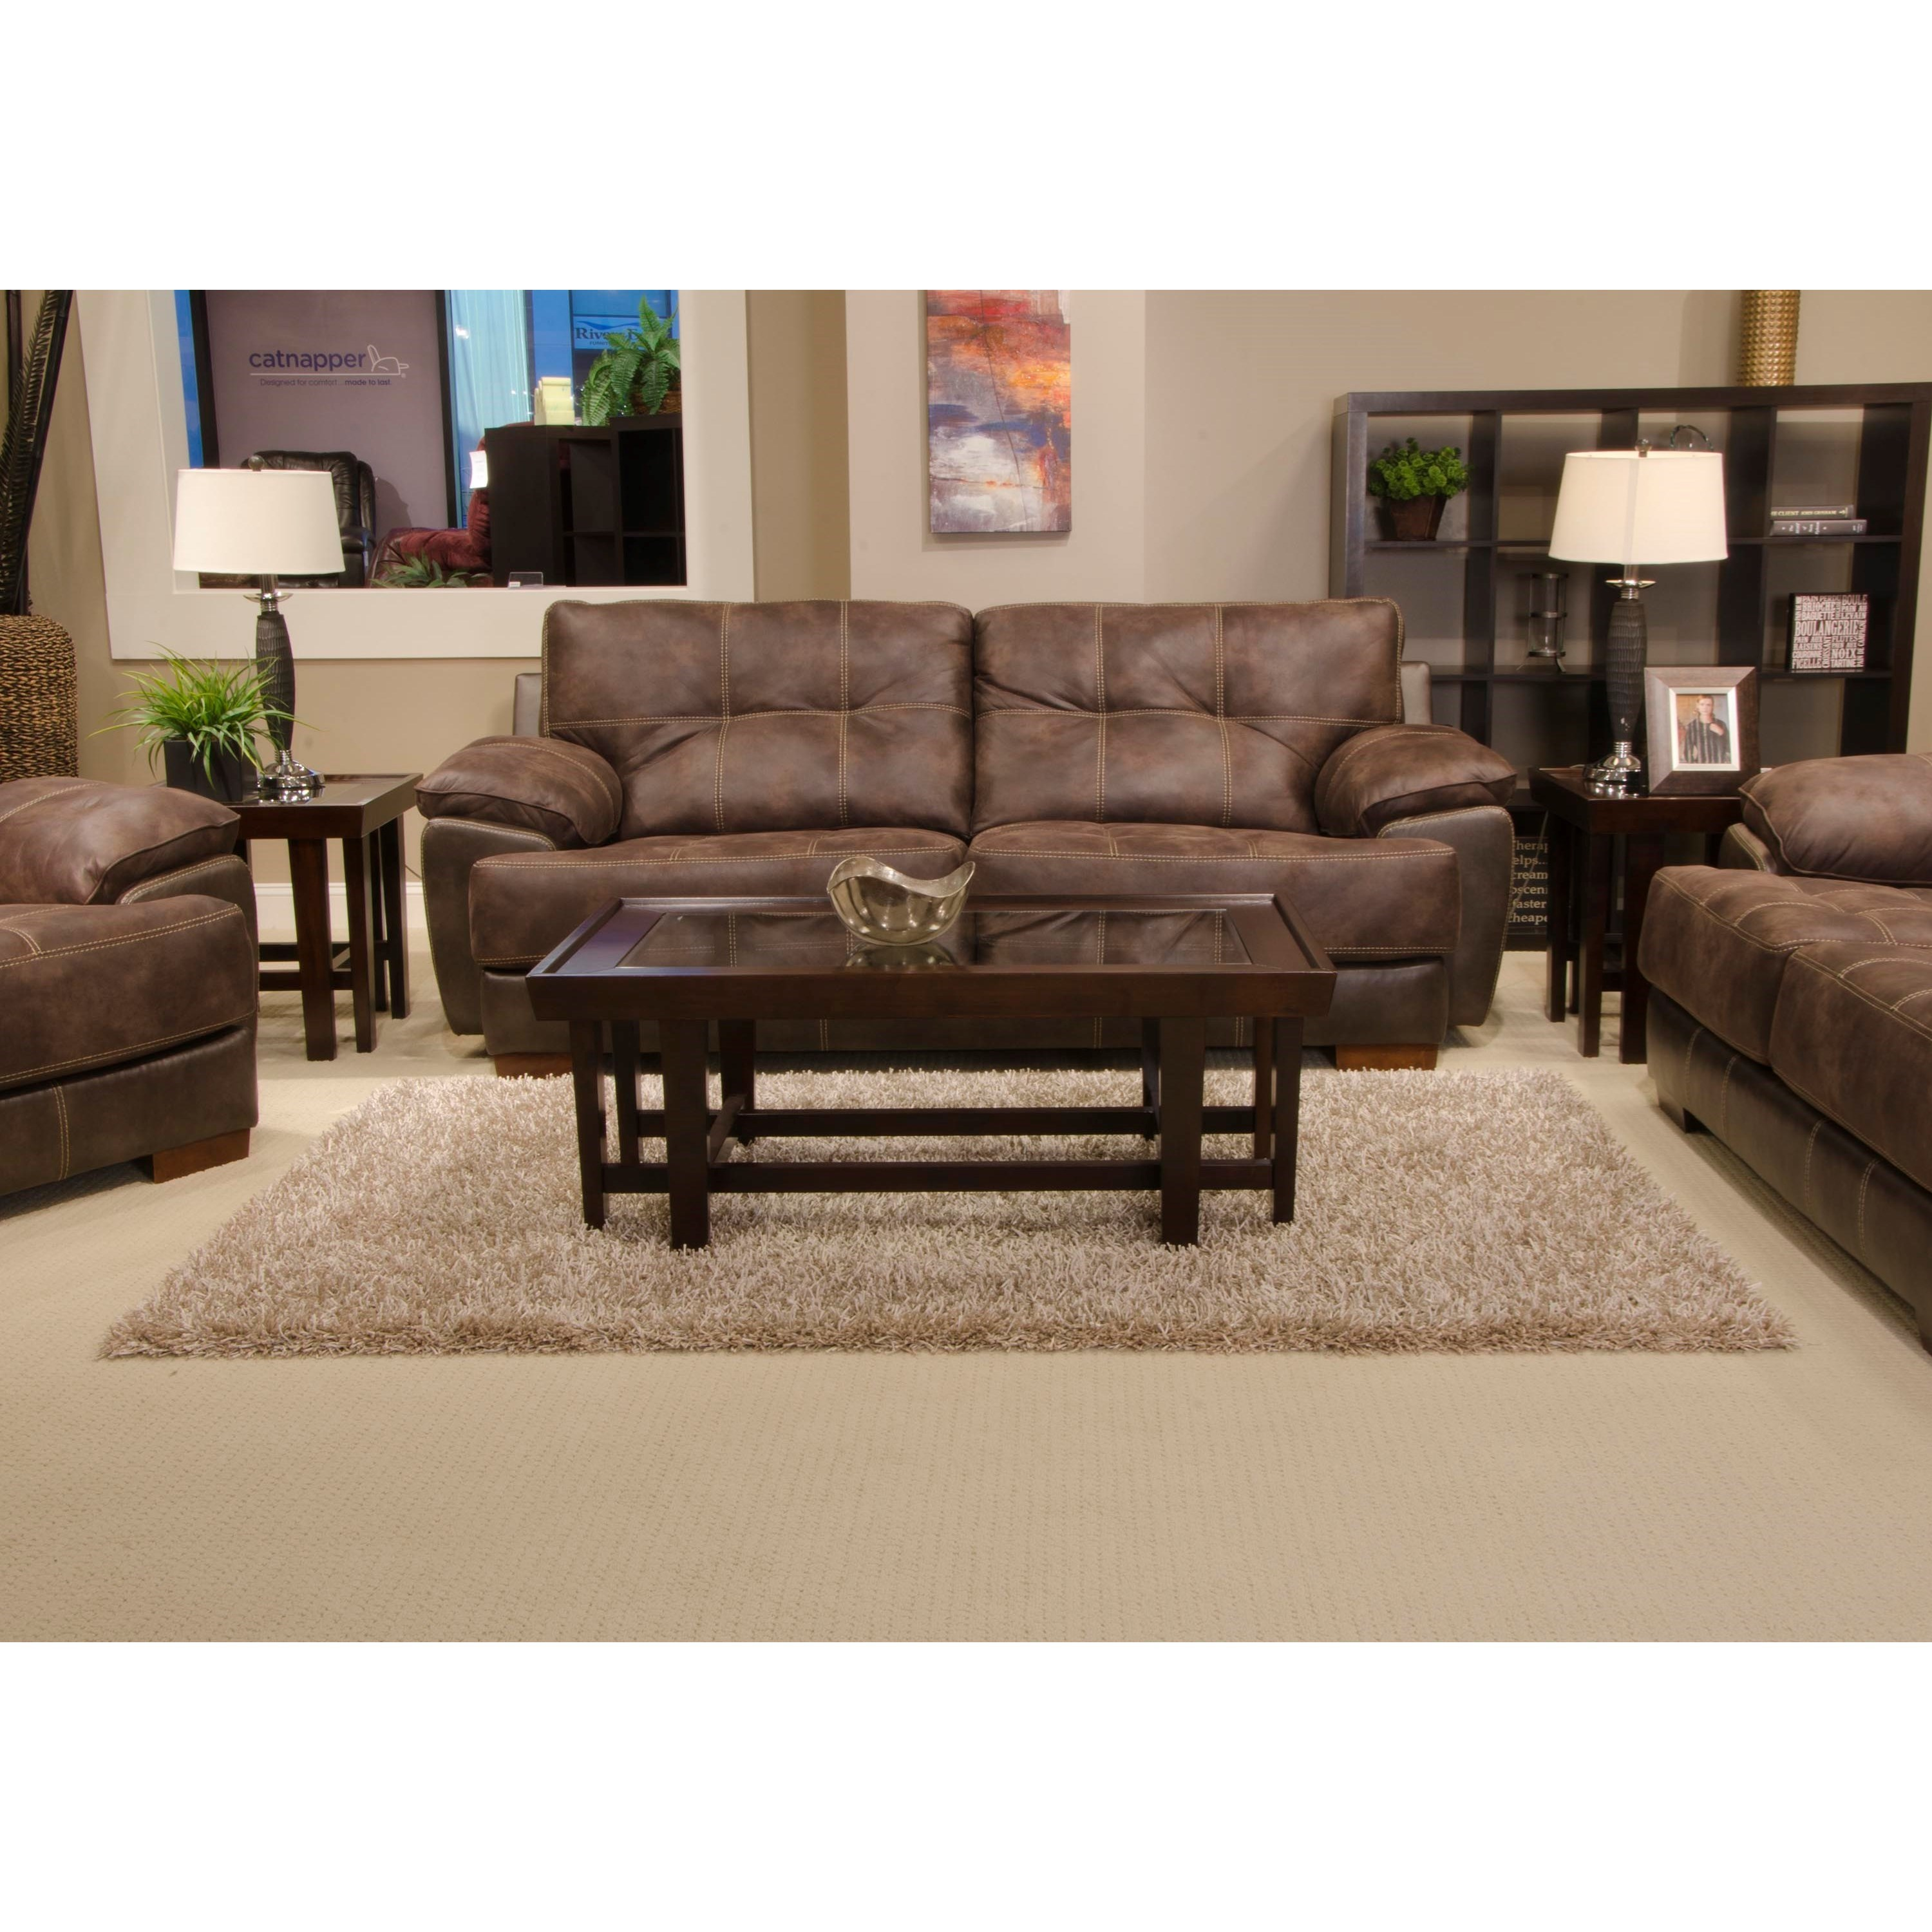 Jackson Furniture Drummond Living Room Group   Item Number: 4296 1152 89  Living